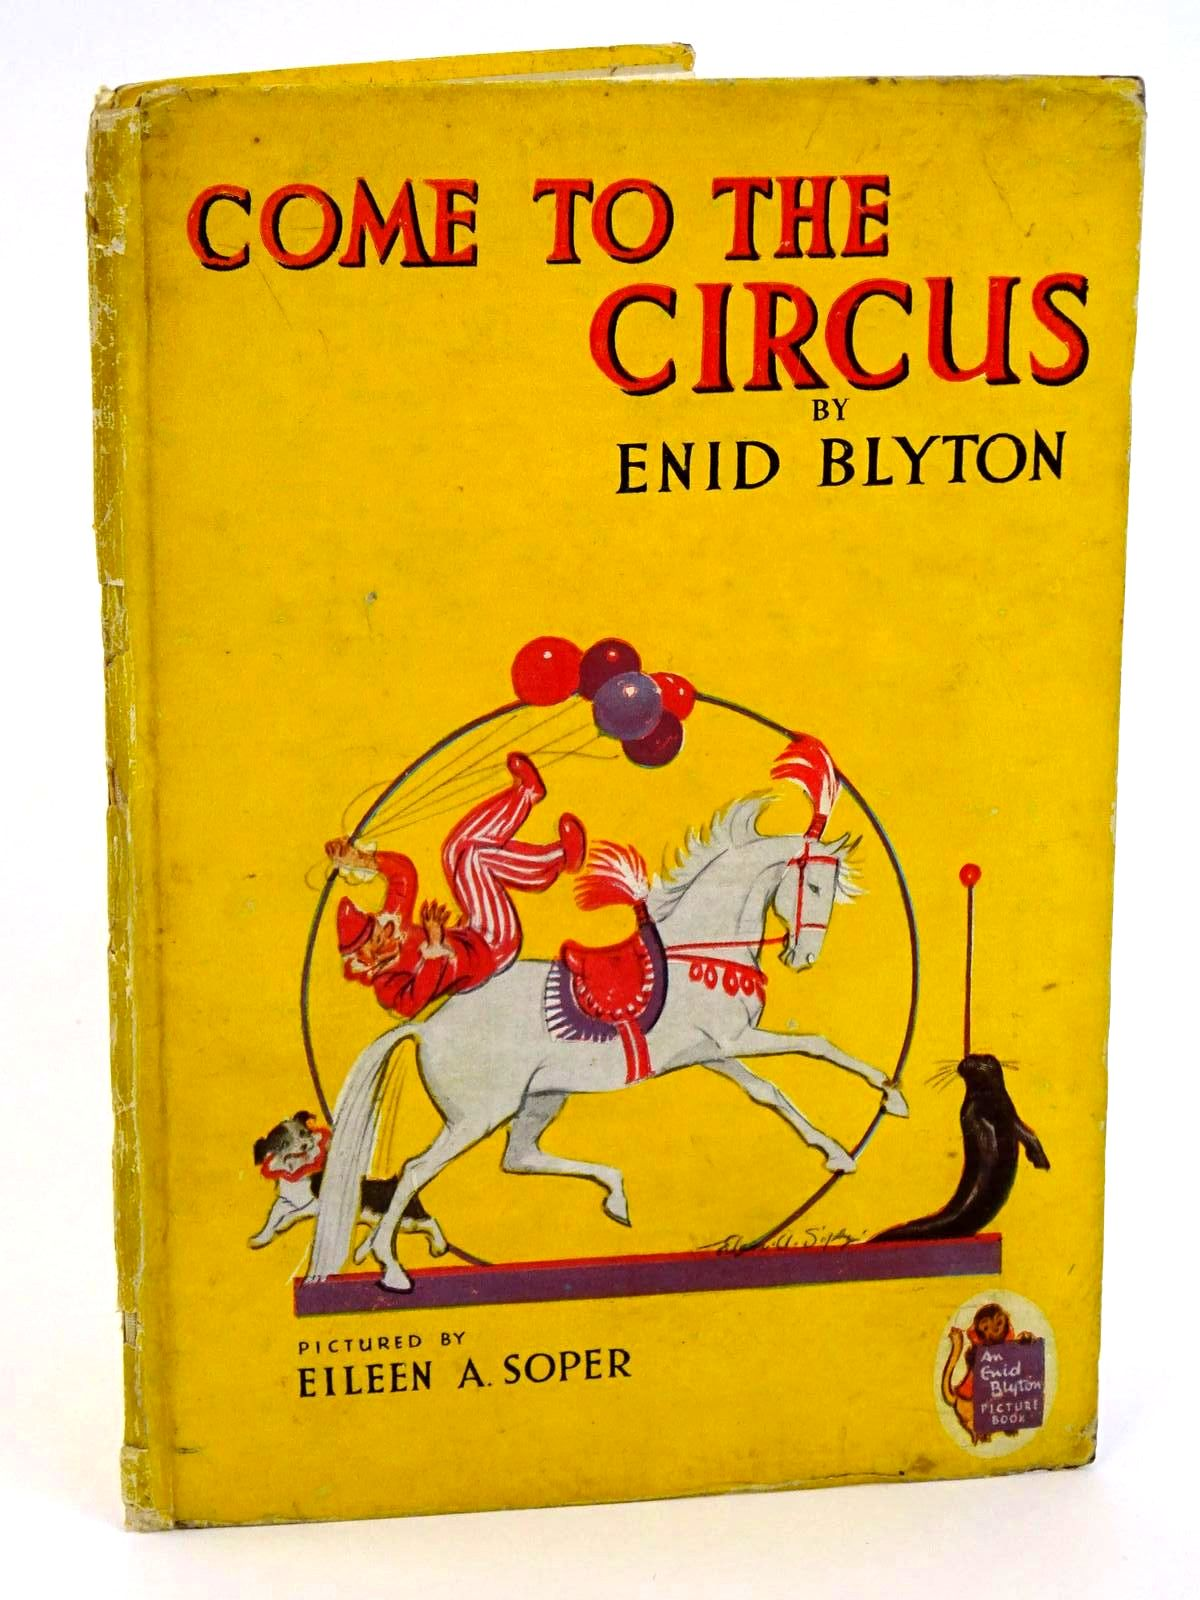 Photo of COME TO THE CIRCUS written by Blyton, Enid illustrated by Soper, Eileen published by The Brockhampton Book Co. Ltd. (STOCK CODE: 1318295)  for sale by Stella & Rose's Books